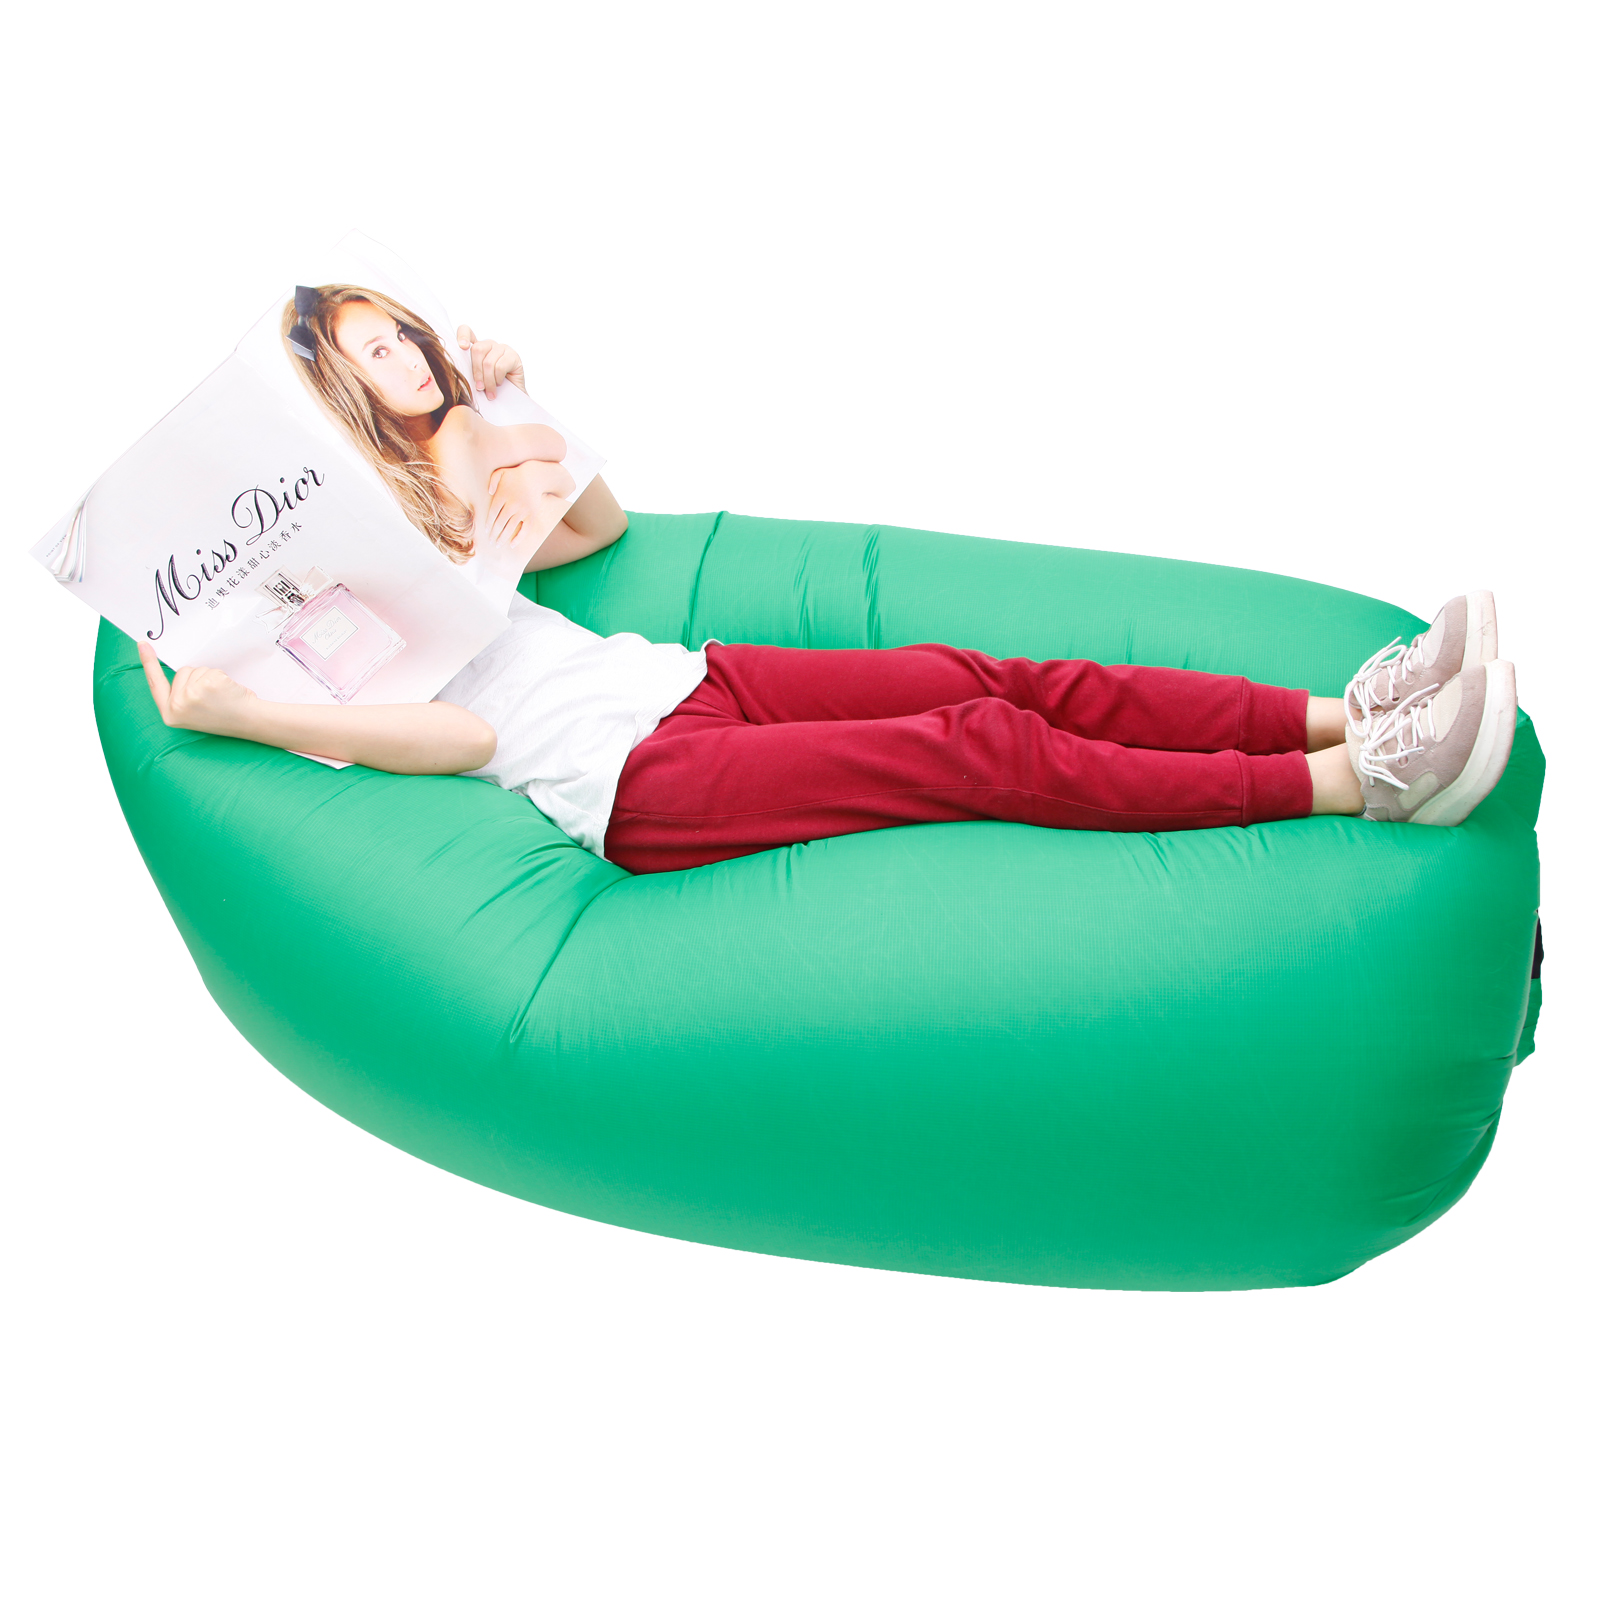 Sof cama hinchable tumbona inflable a aire para playa for Sofa cama inflable